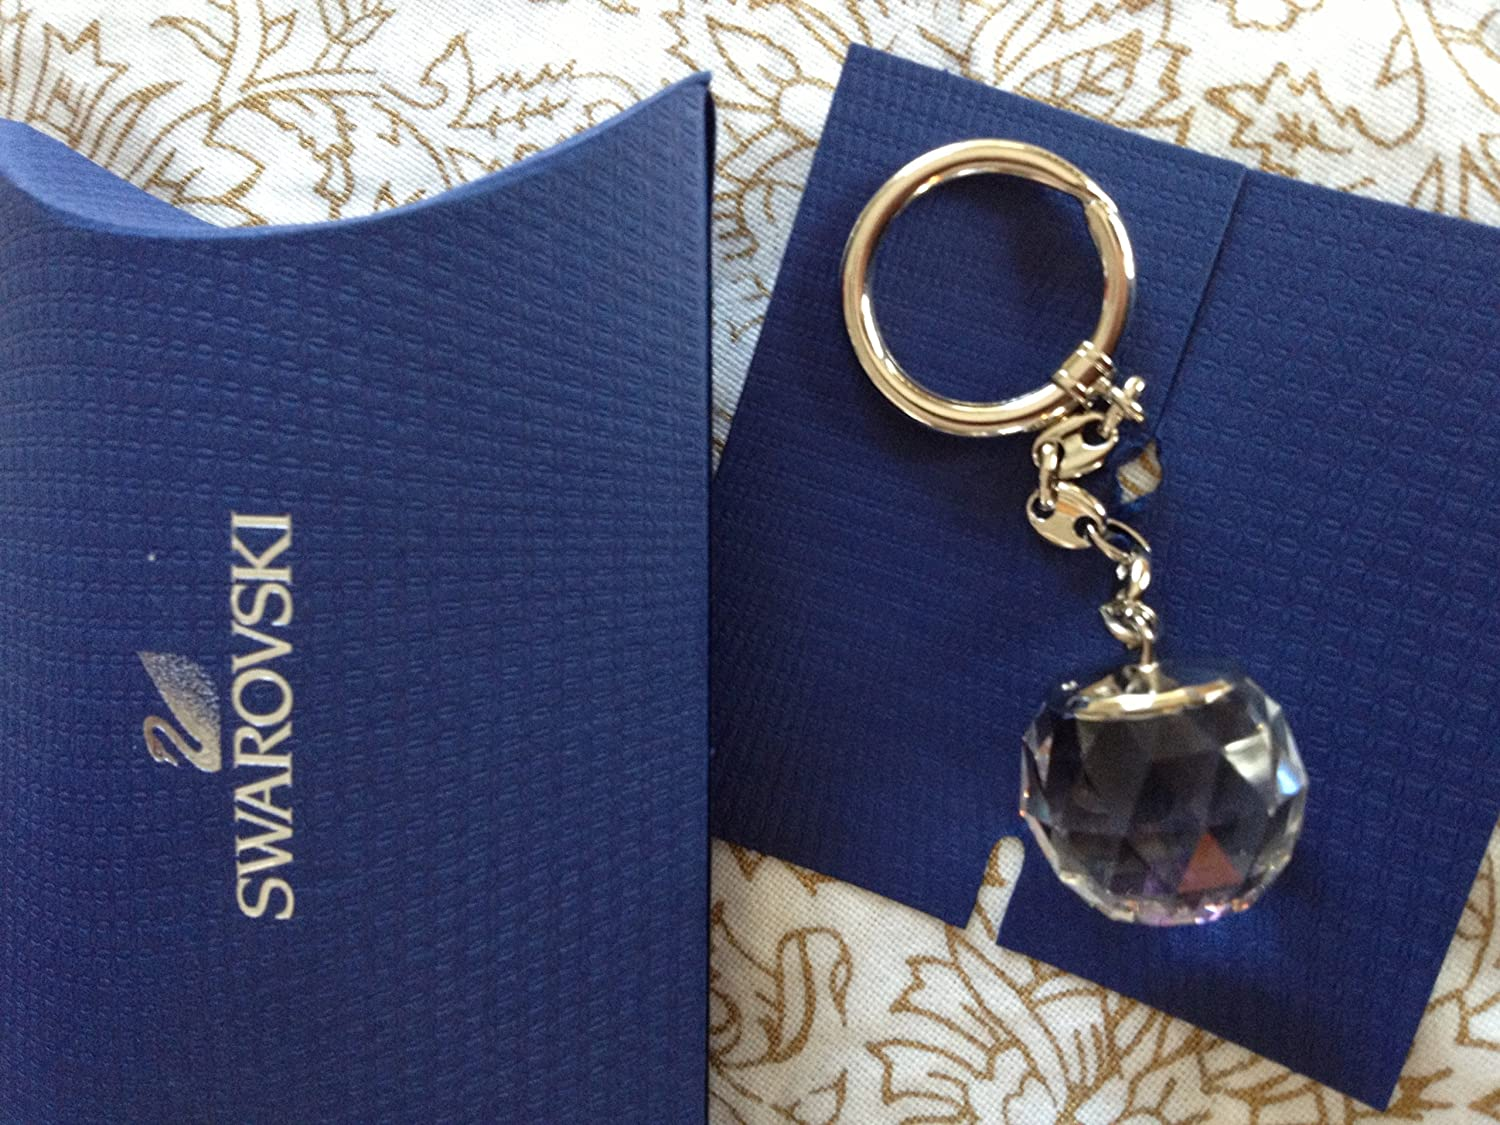 Swarovski Crystal Ball Key Ring  Amazon.co.uk  Office Products b0d3fcd01